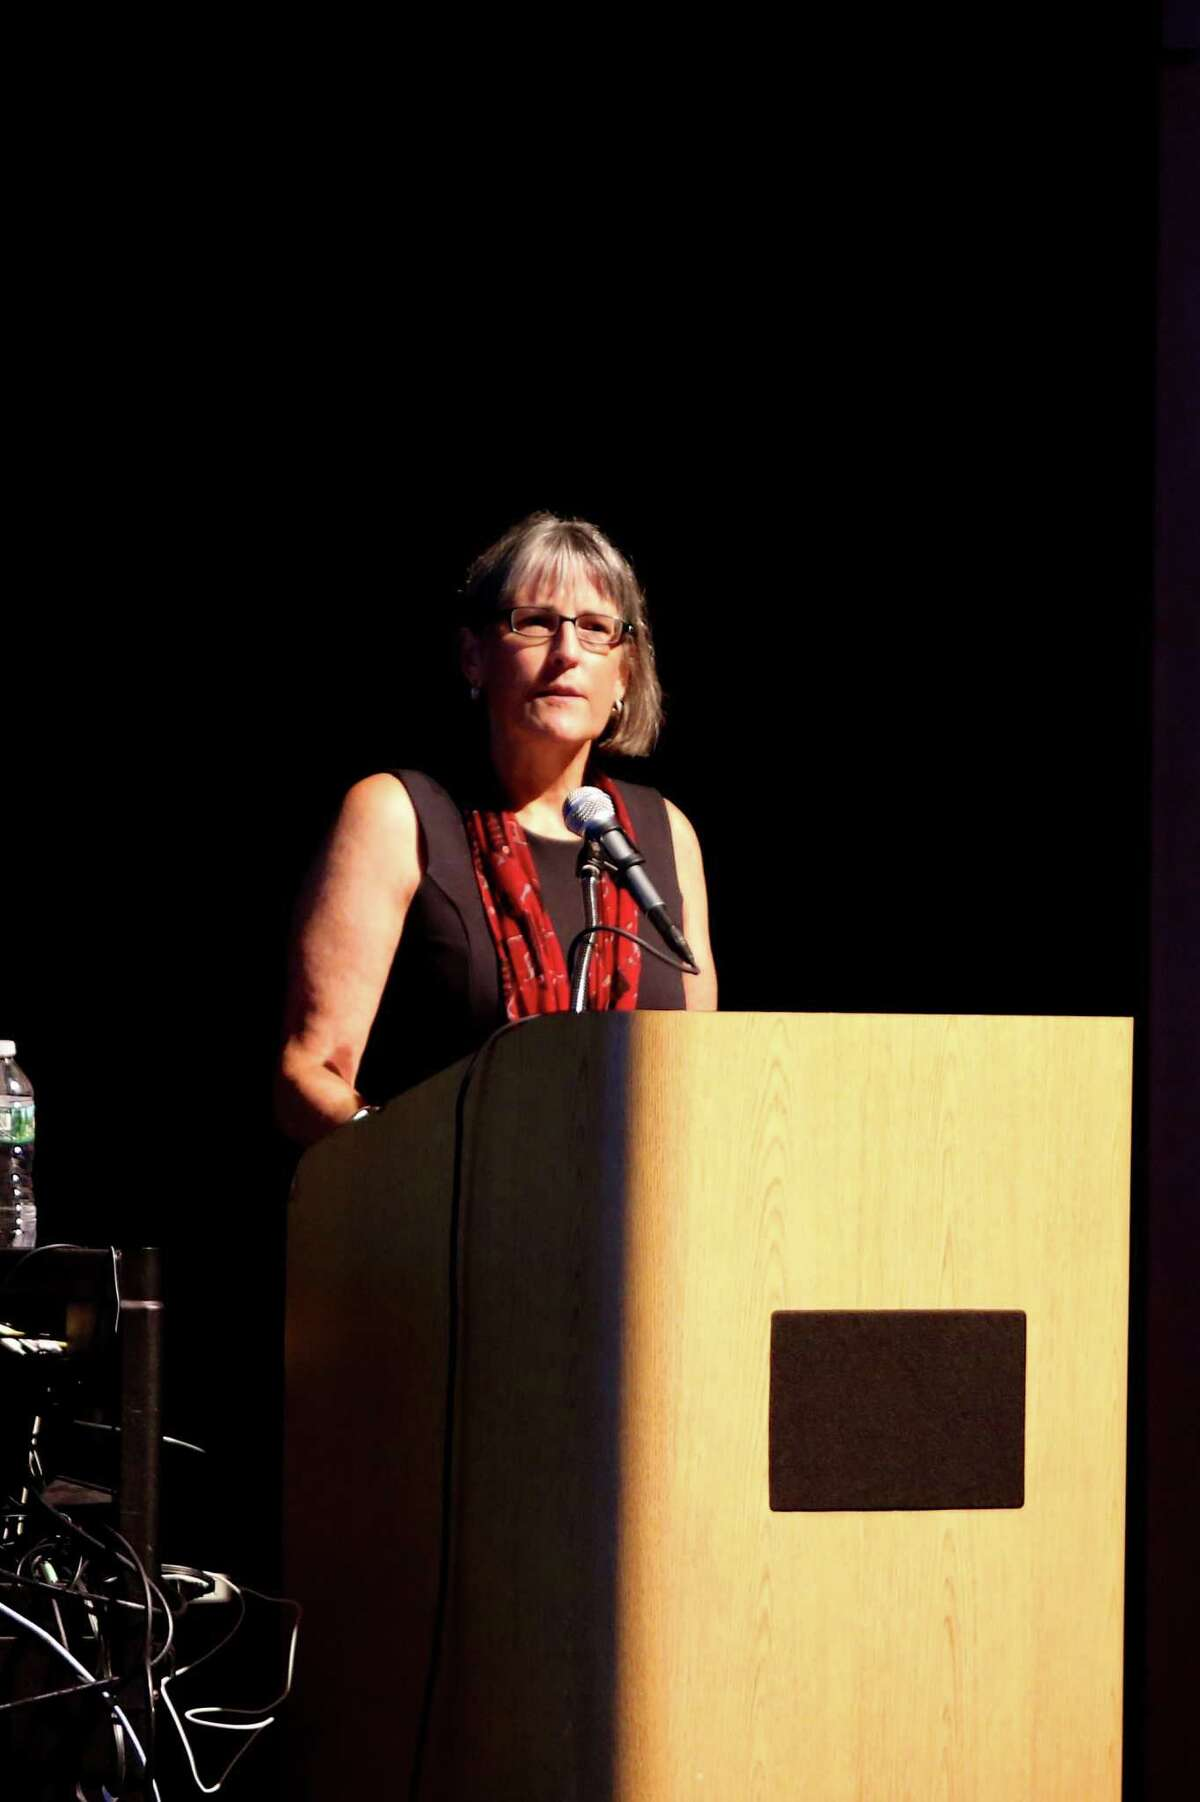 Ms. Carol Sutton, President of GEA, gives welcome remarks during the convocation ceremony for all Greenwich Public School teachers held inside the auditorium at Greenwich High School August 26, 2016.